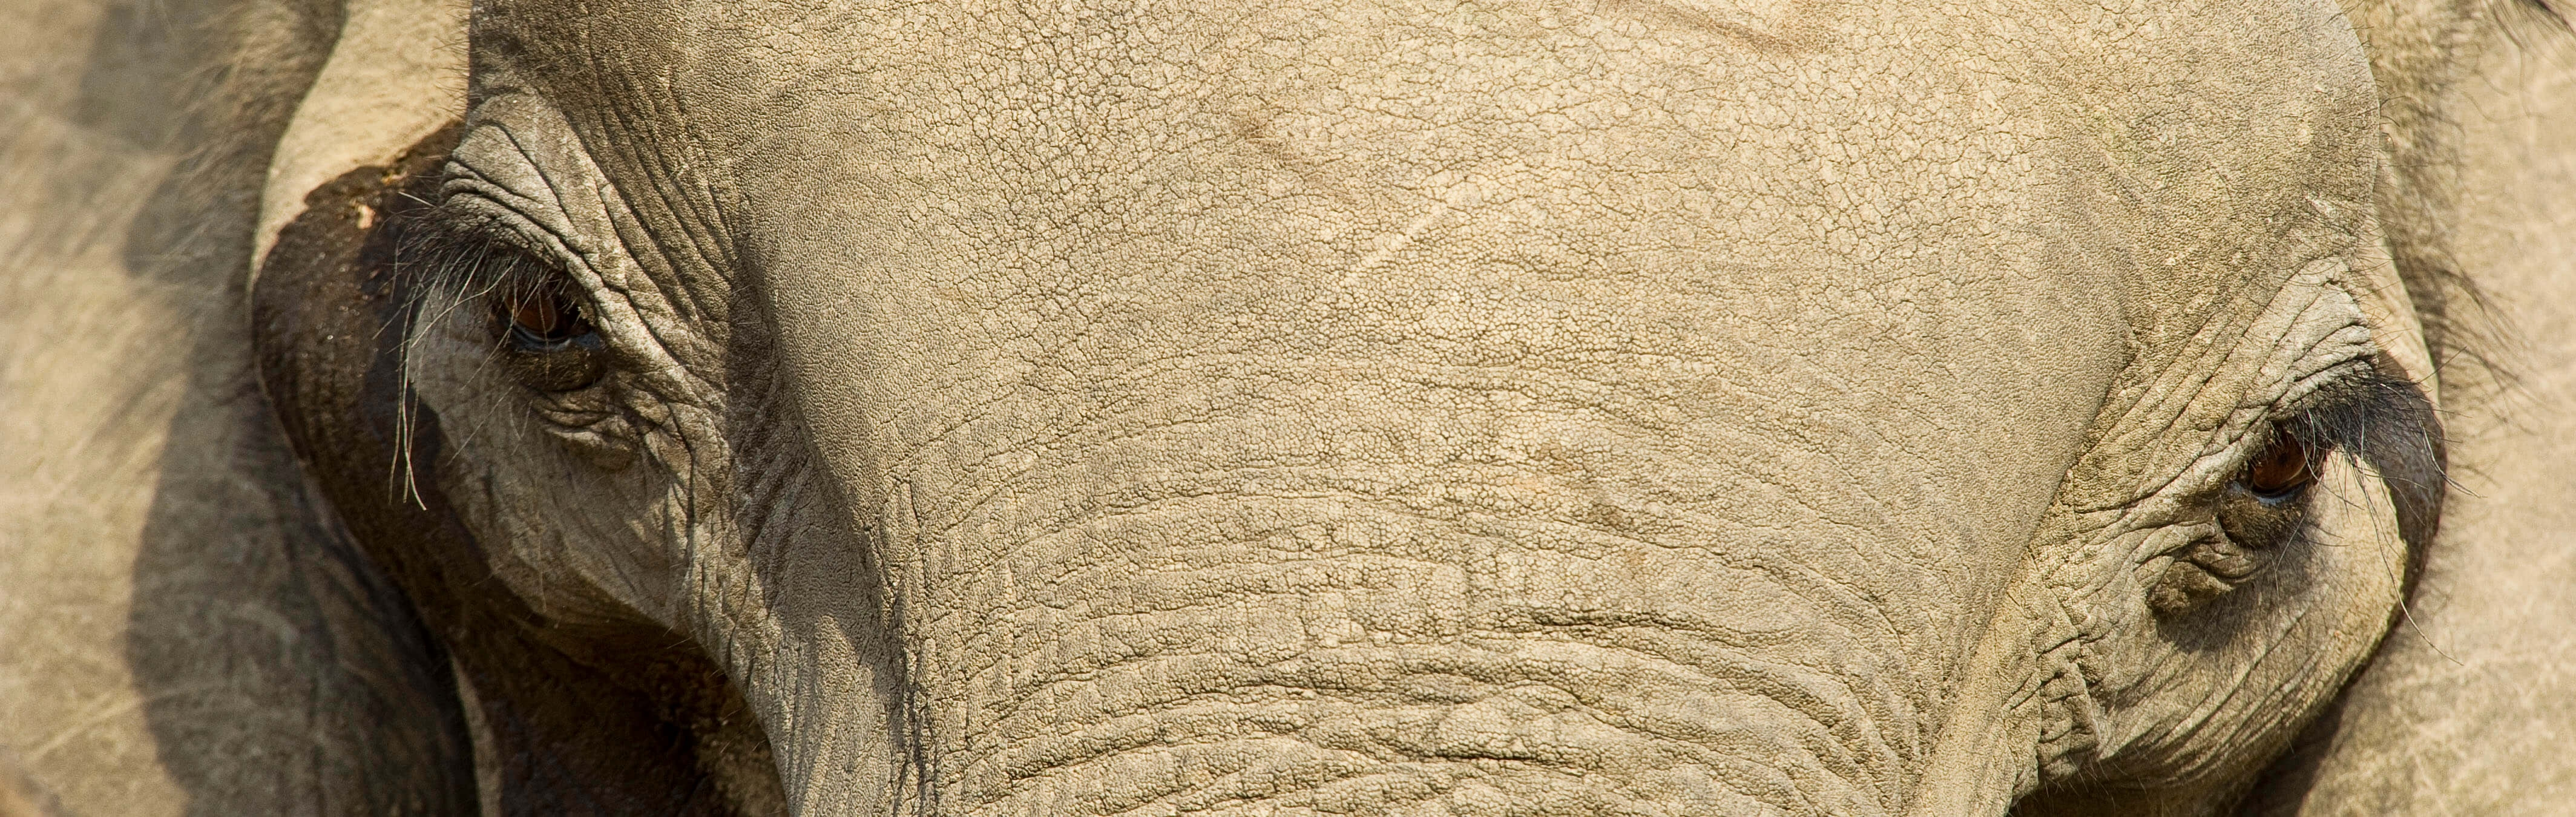 Elephant close up in Zambia, J. Goetz